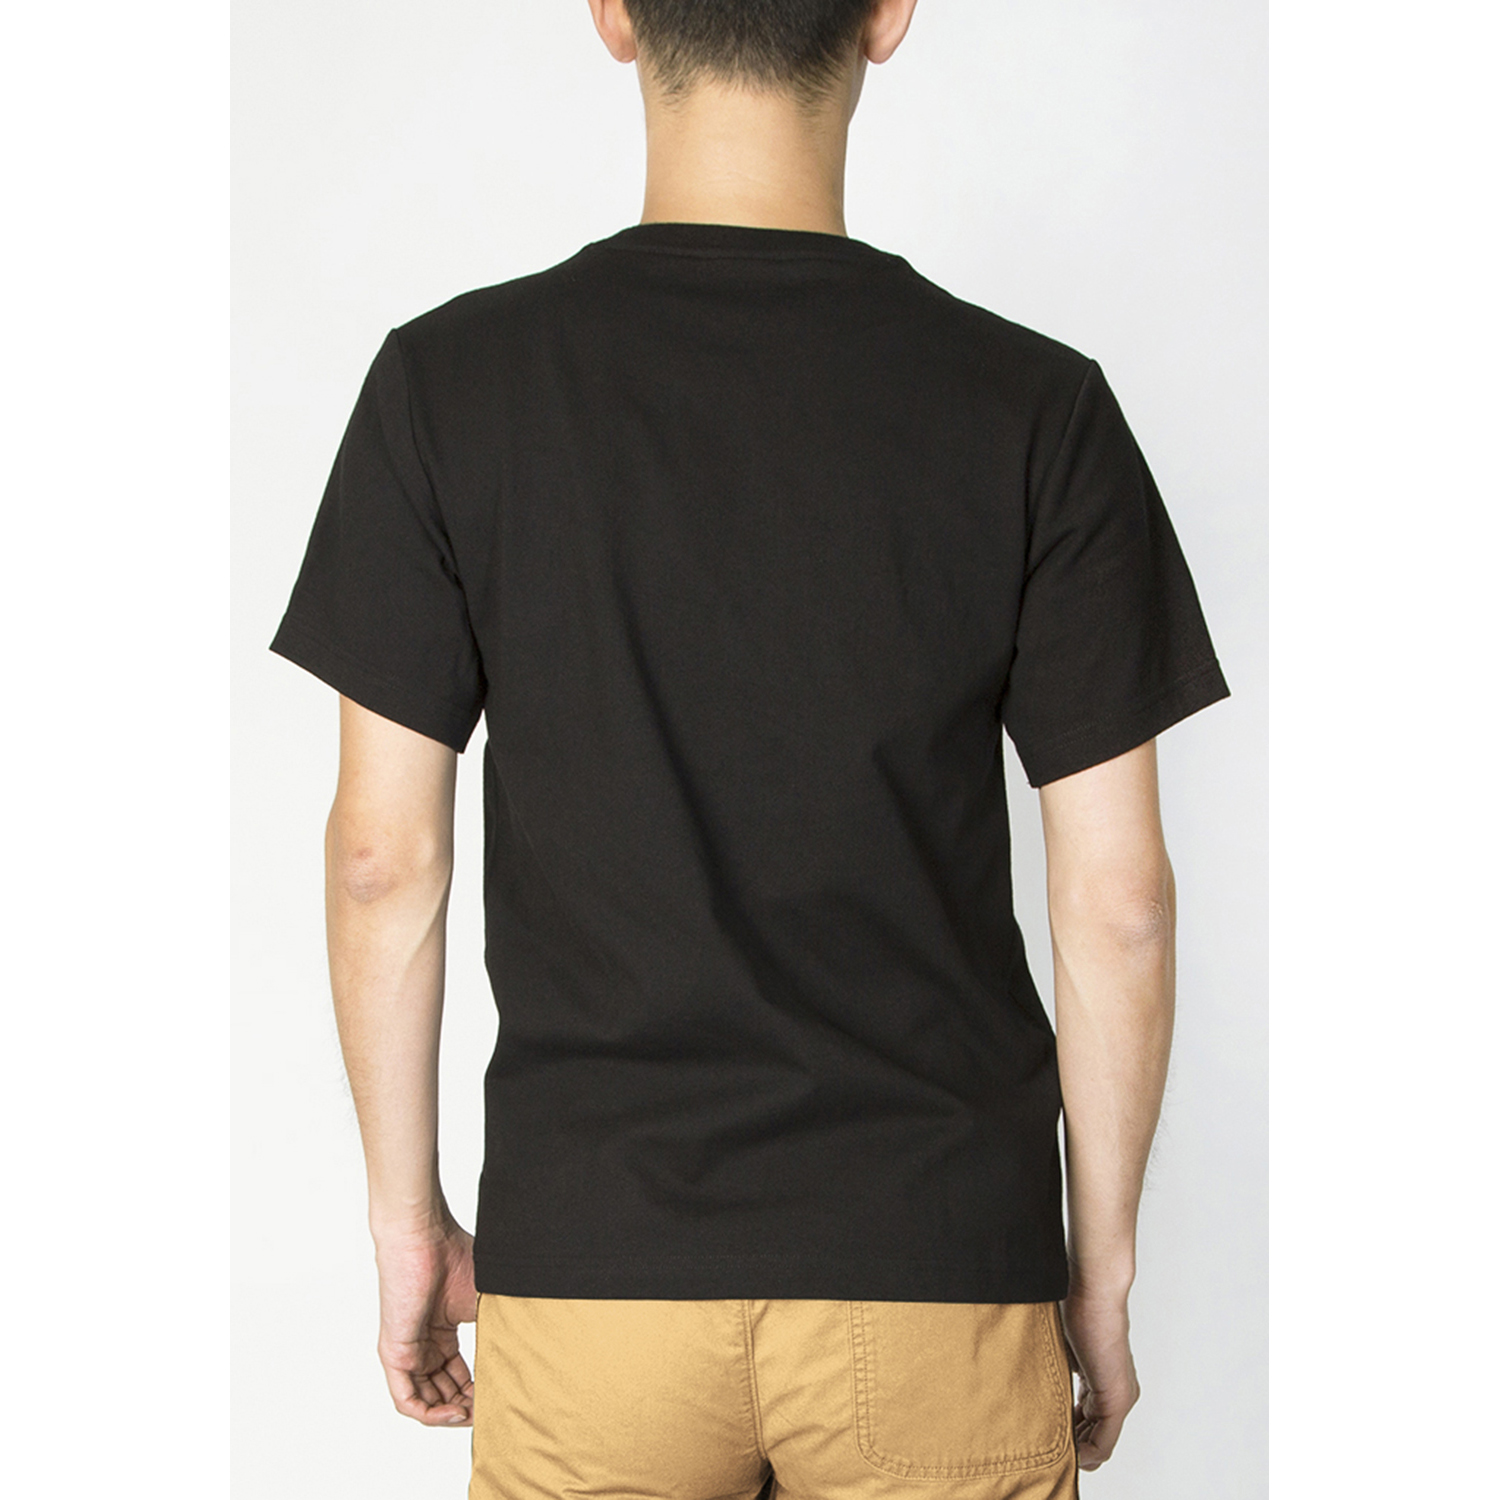 BSX Regular Fit Printed T- shirt 10409024622